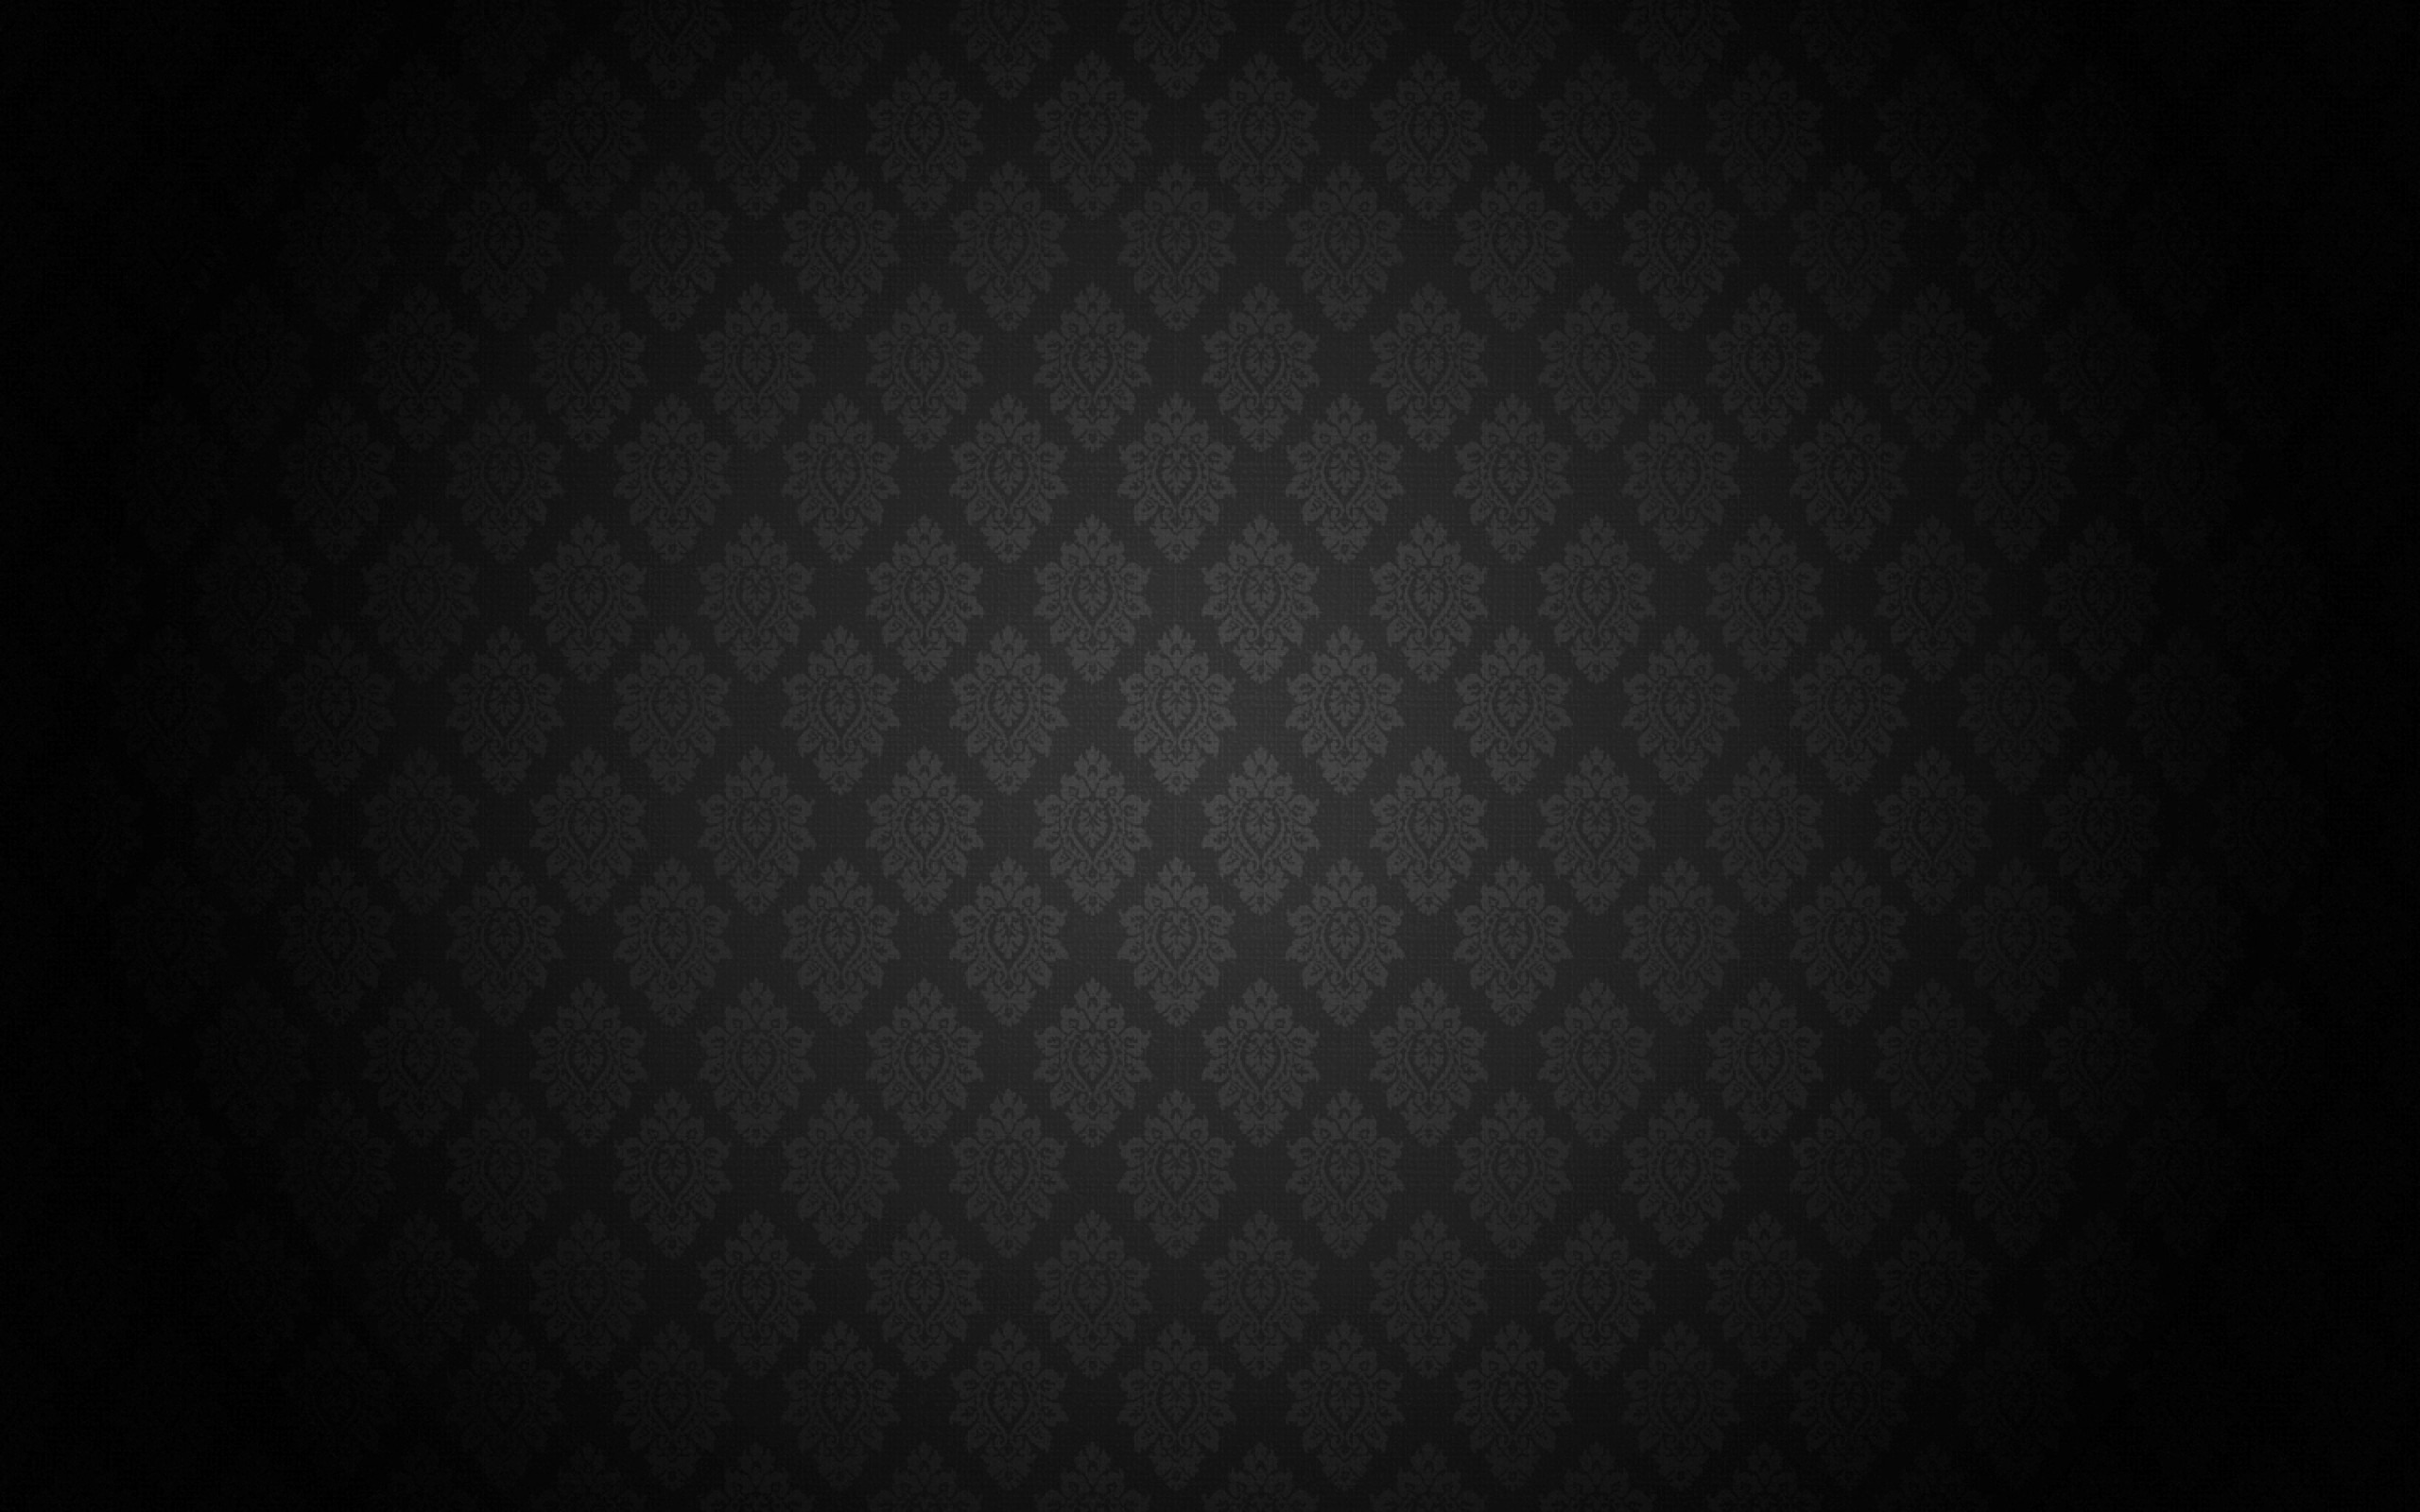 Background wallpaper Black and White Pattern Background hd wallpaper 2560x1600